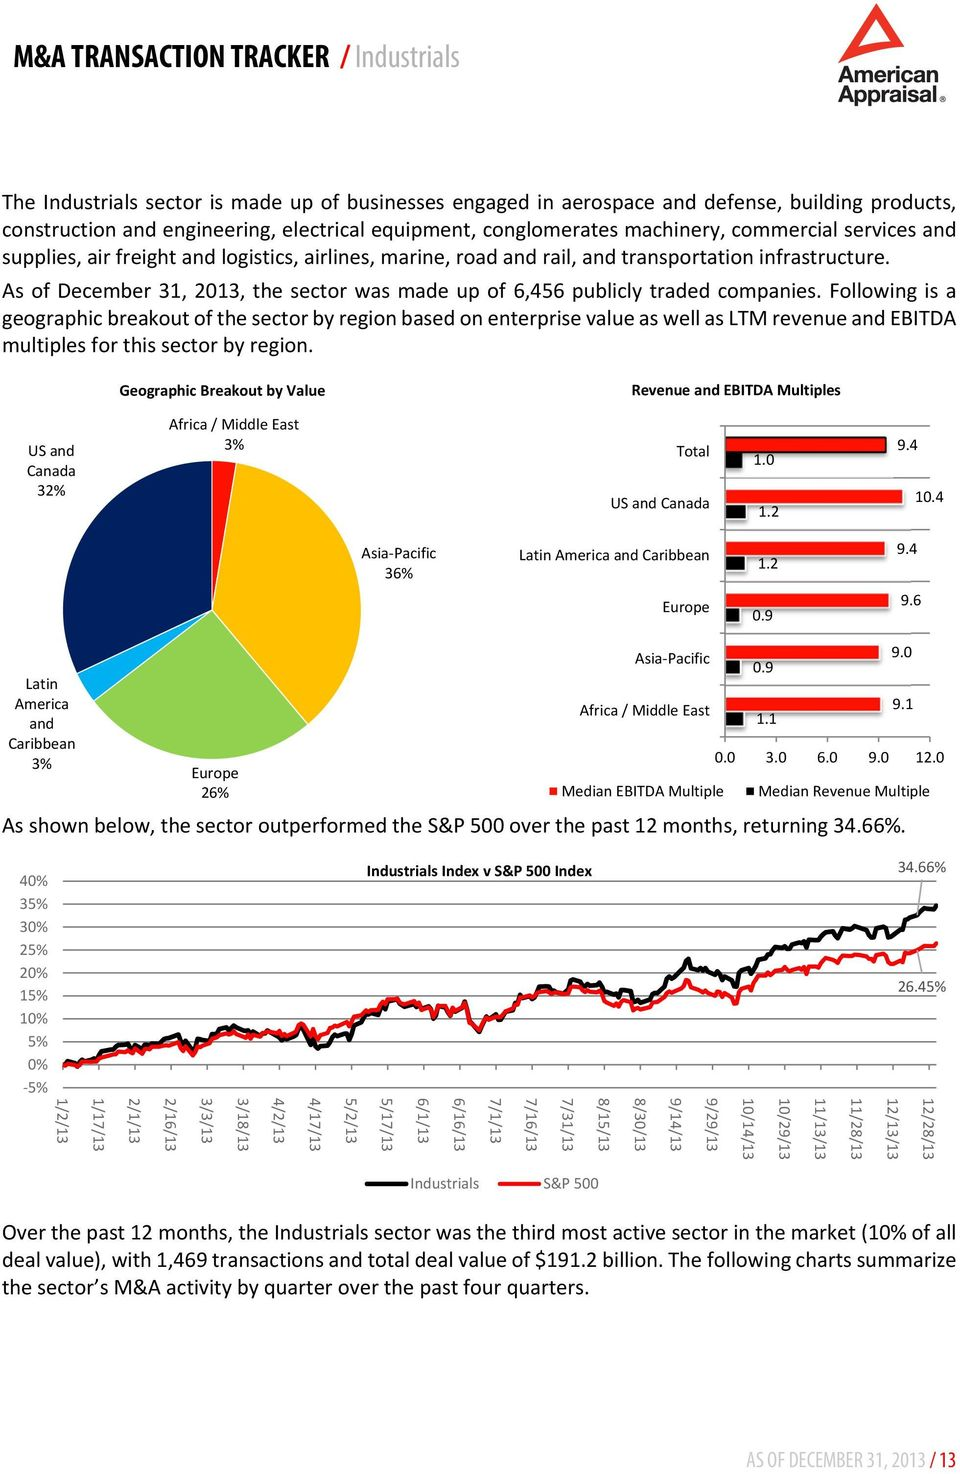 As of December 31, 2013, the sector was made up of 6,456 publicly traded companies.